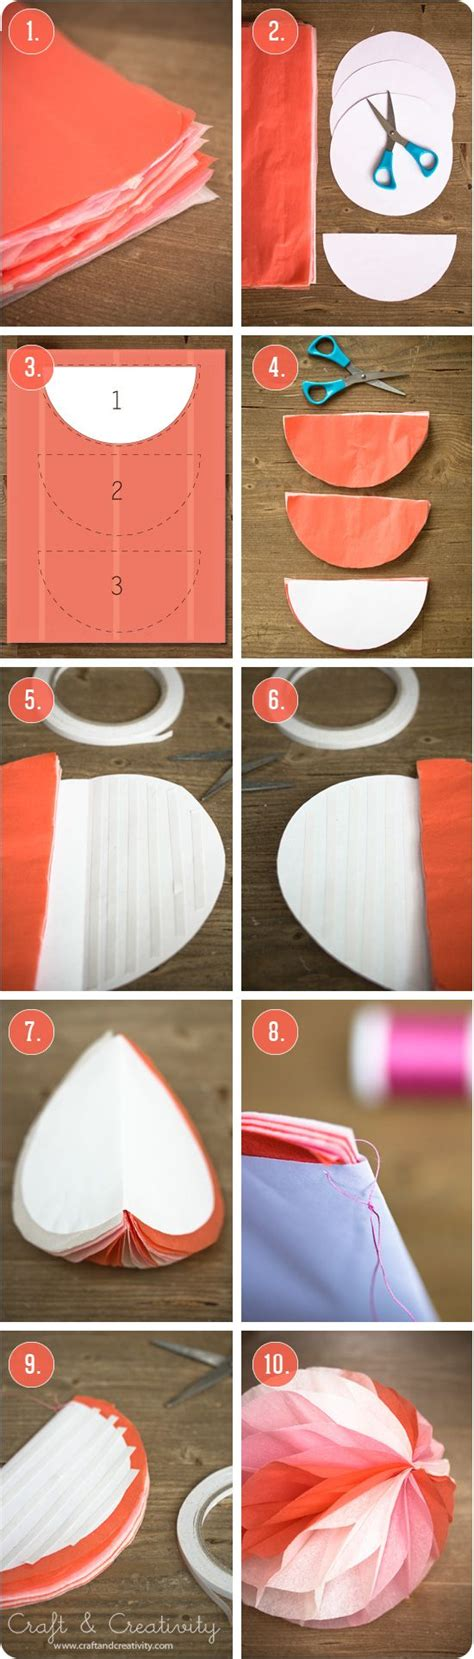 How To Make Honeycomb Paper - creativity diy and crafts and honeycomb paper on